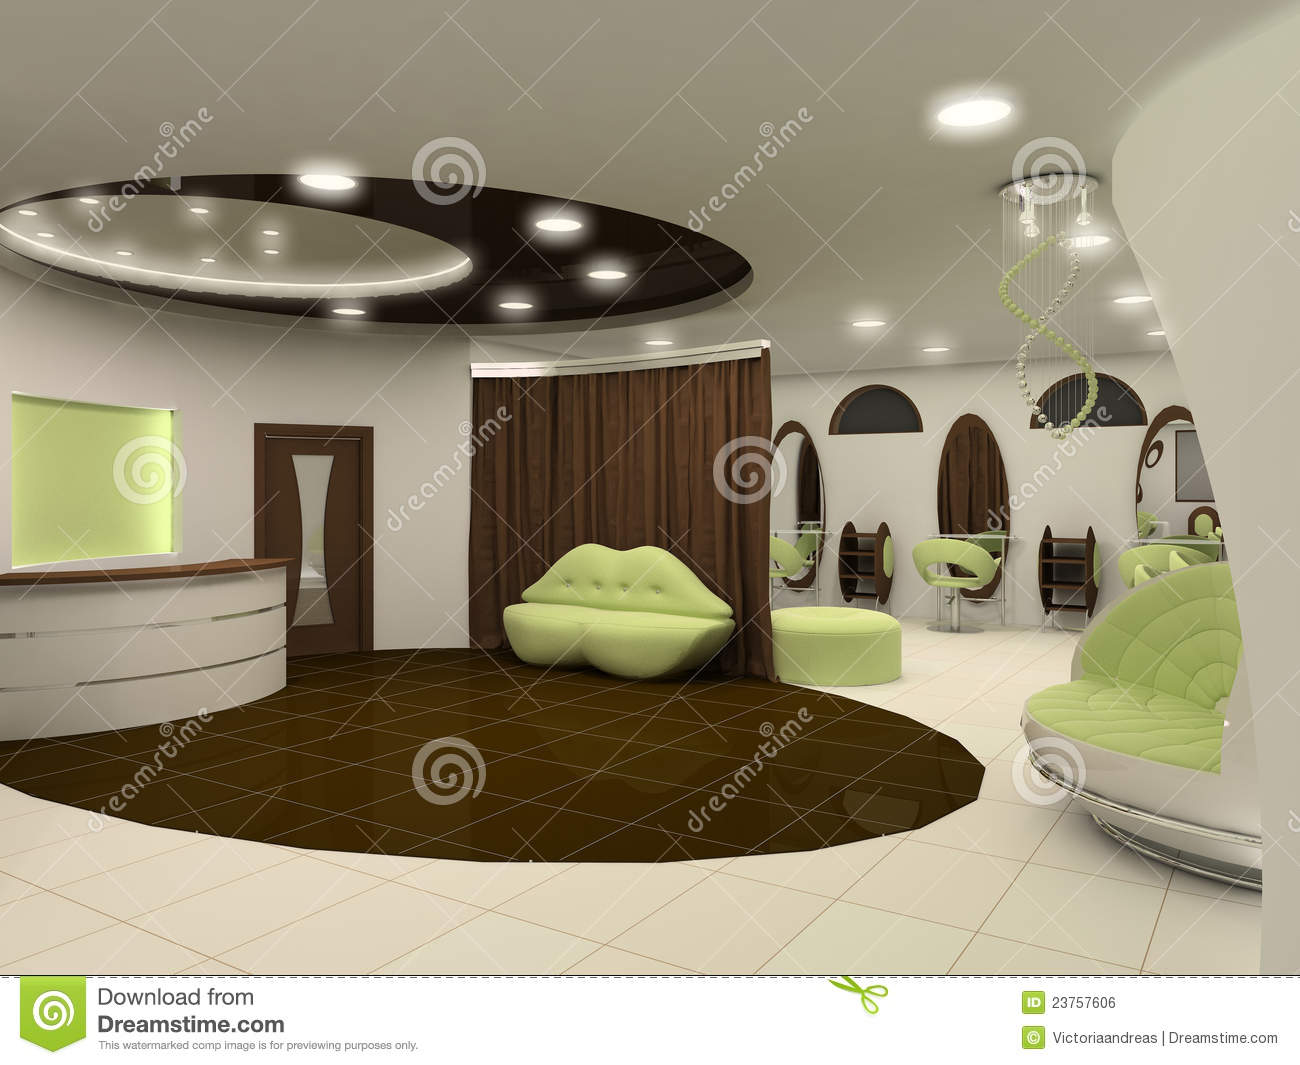 beauty salon chair folding for elderly outlook of luxury interior space stock illustration - image: 23757606